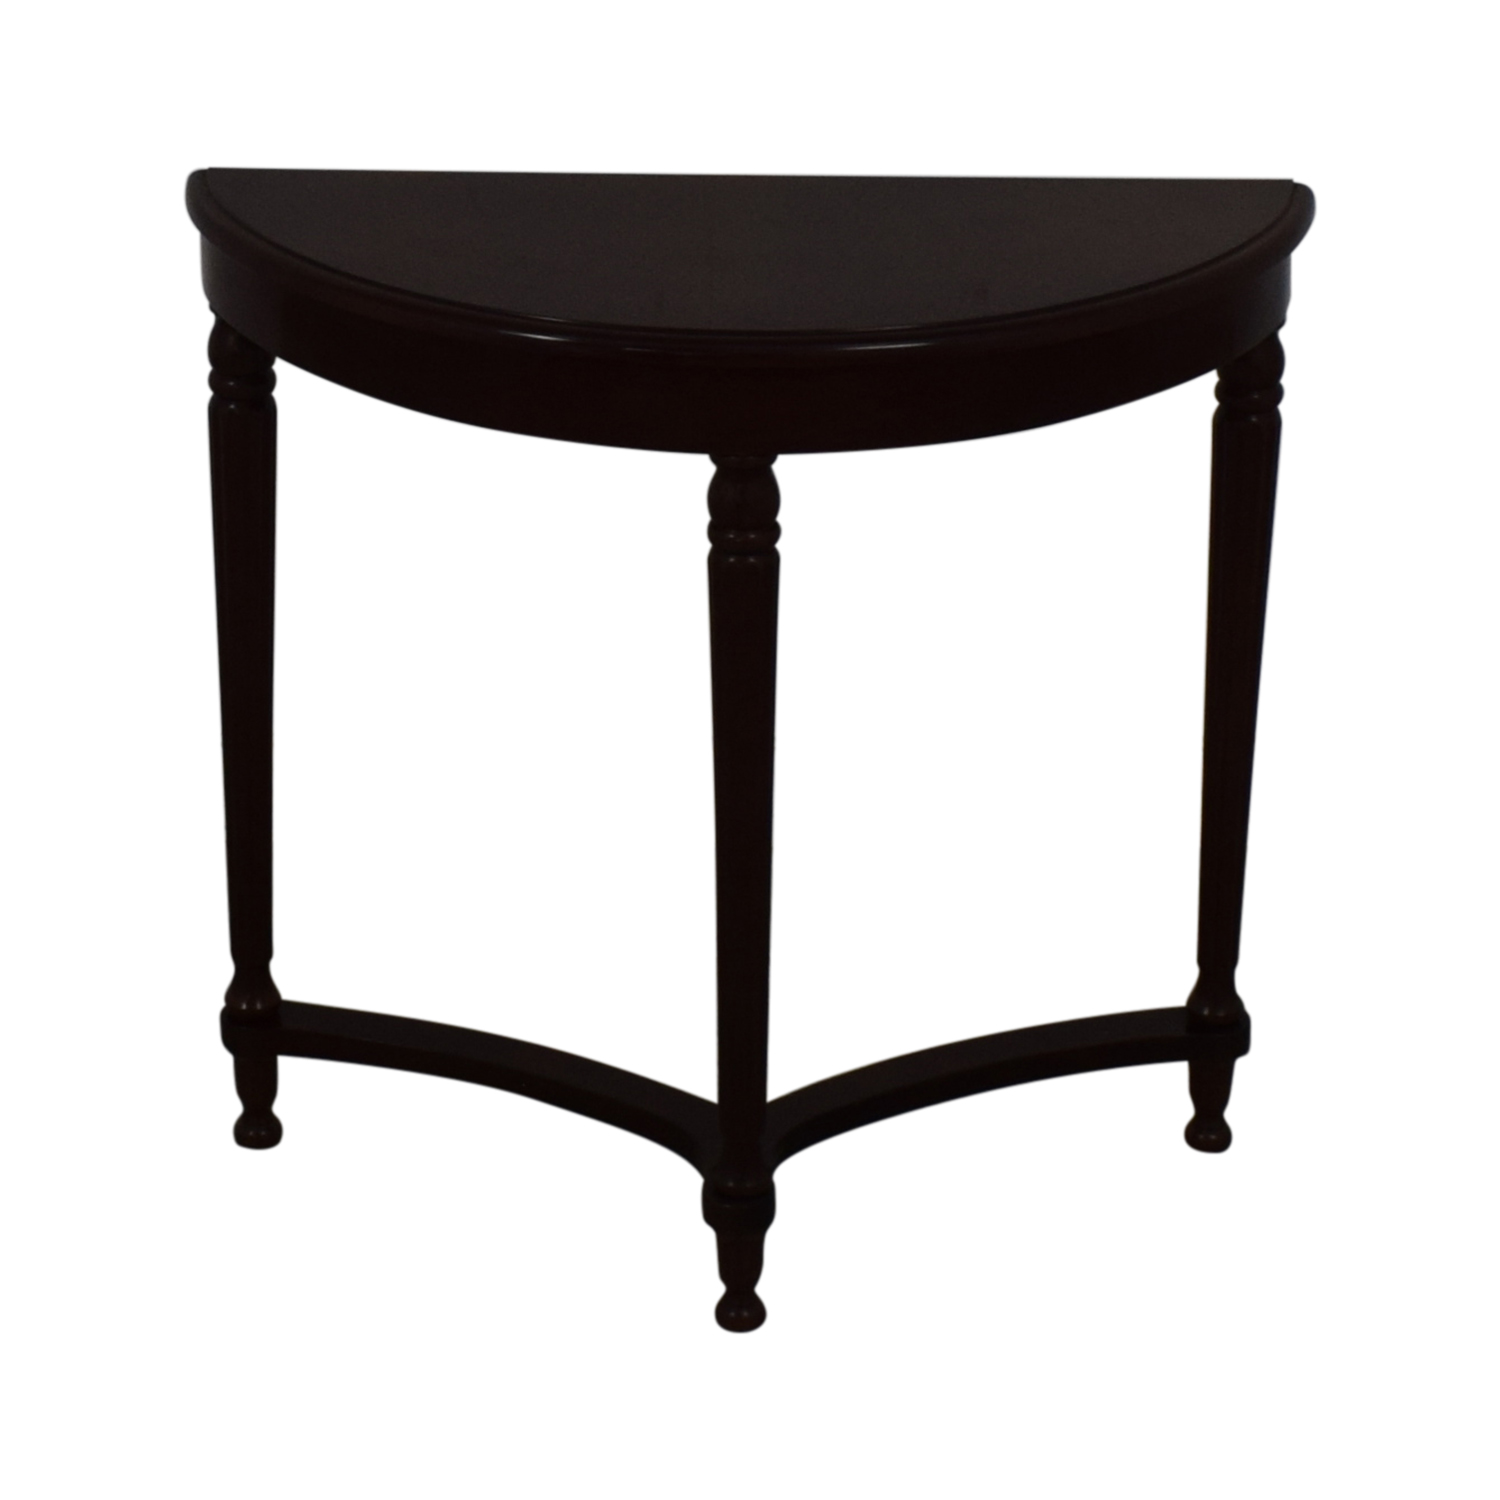 Pleasing 85 Off Bombay Company Bombay Company Crescent Console Table Tables Lamtechconsult Wood Chair Design Ideas Lamtechconsultcom